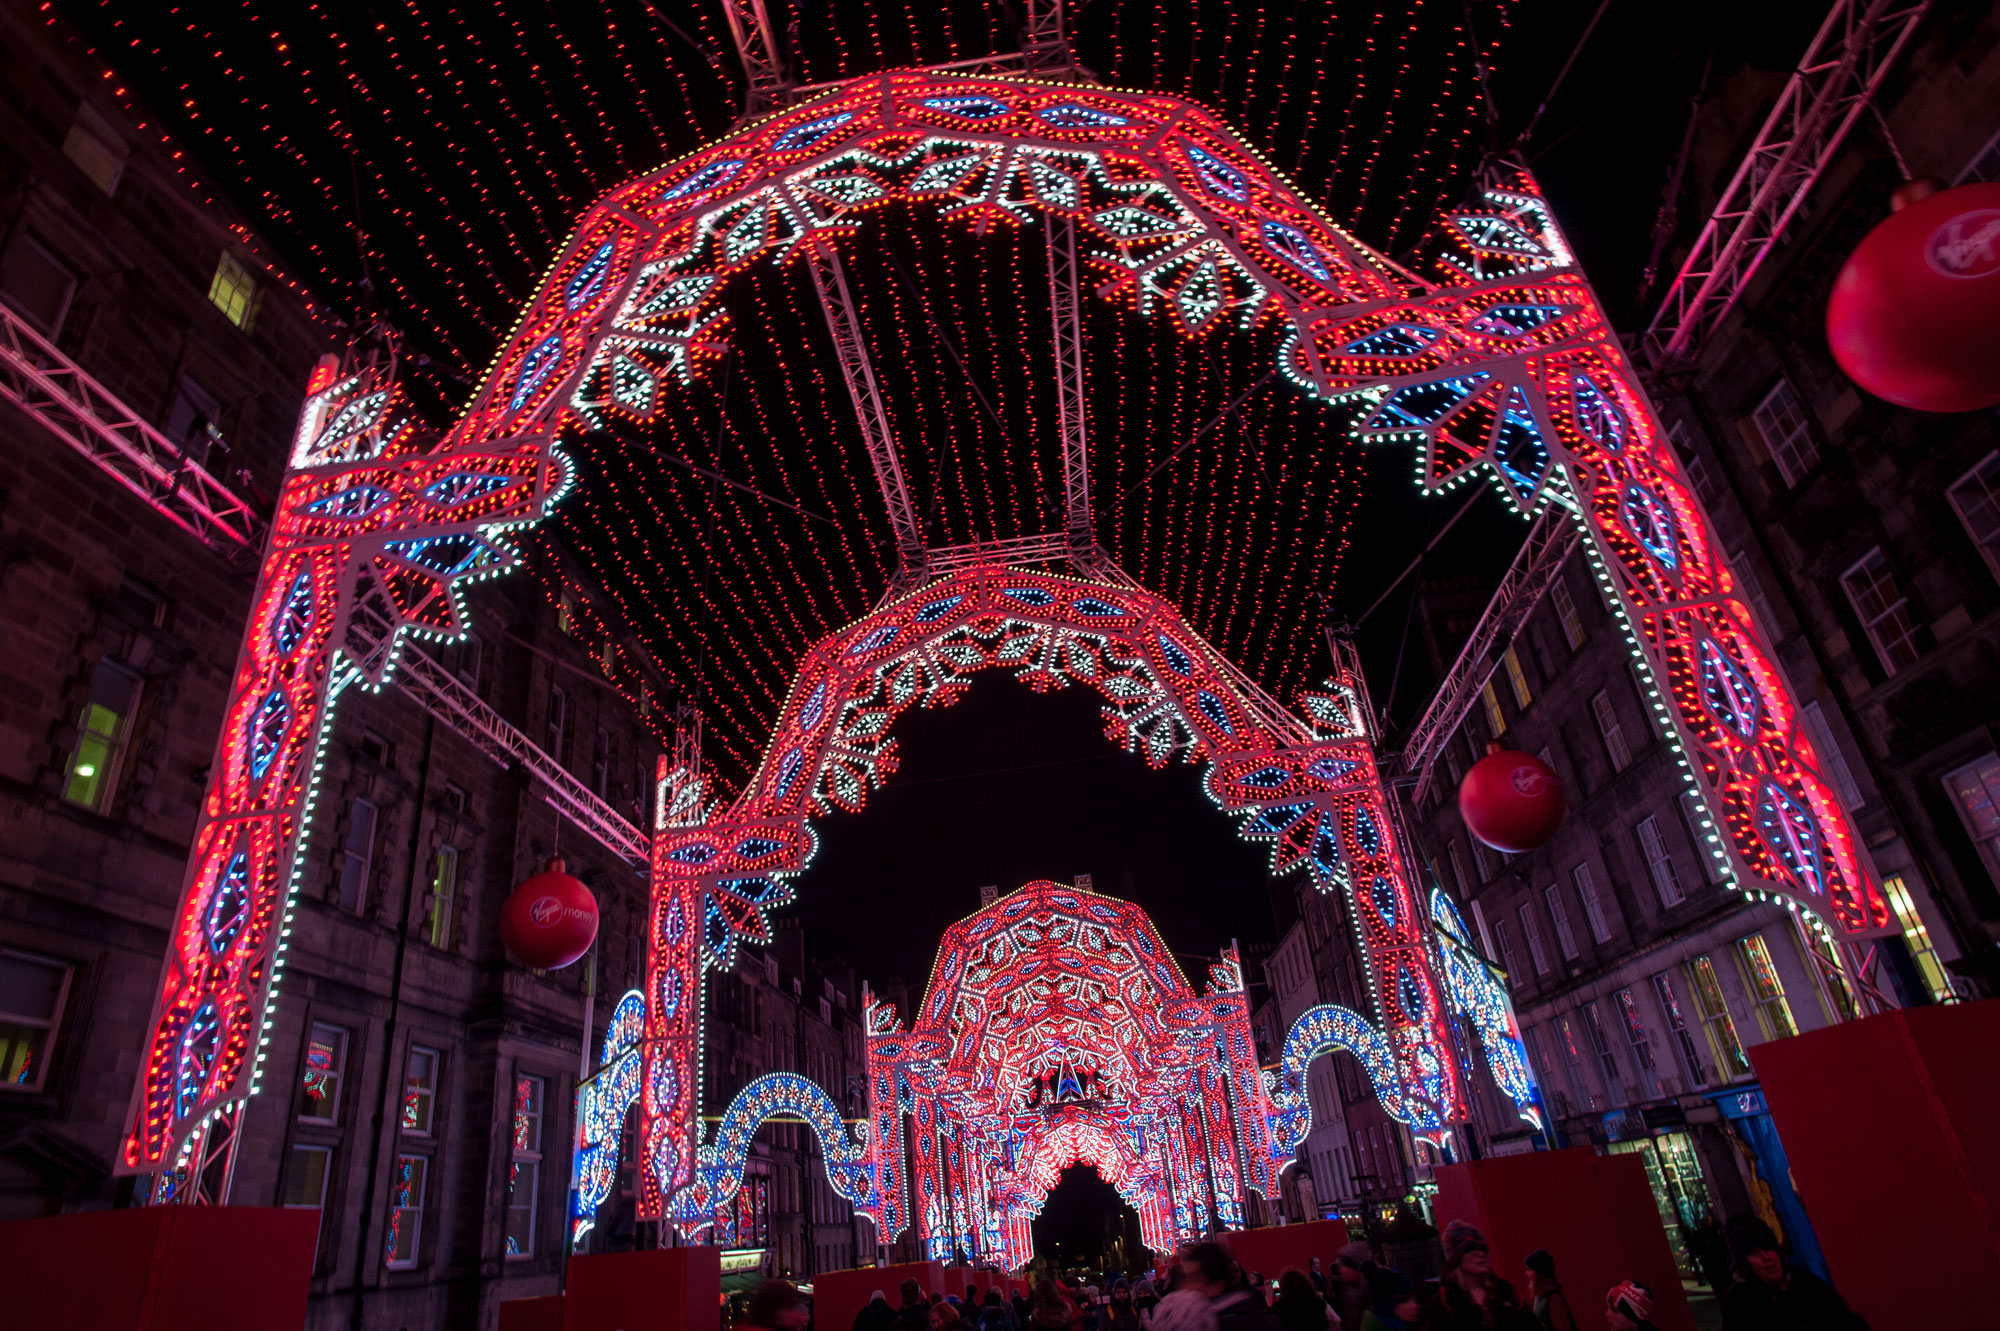 Virgin Money Street of Lights launches with a specially designed architectural installation of 26 arches of 60,000 lights stretching along the Royal Mile, from City Chambers to the Tron Kirk in Edinburgh, Scotland, on Nov. 30, 2015. GETTY IMAGES/Roberto Ricciuti.